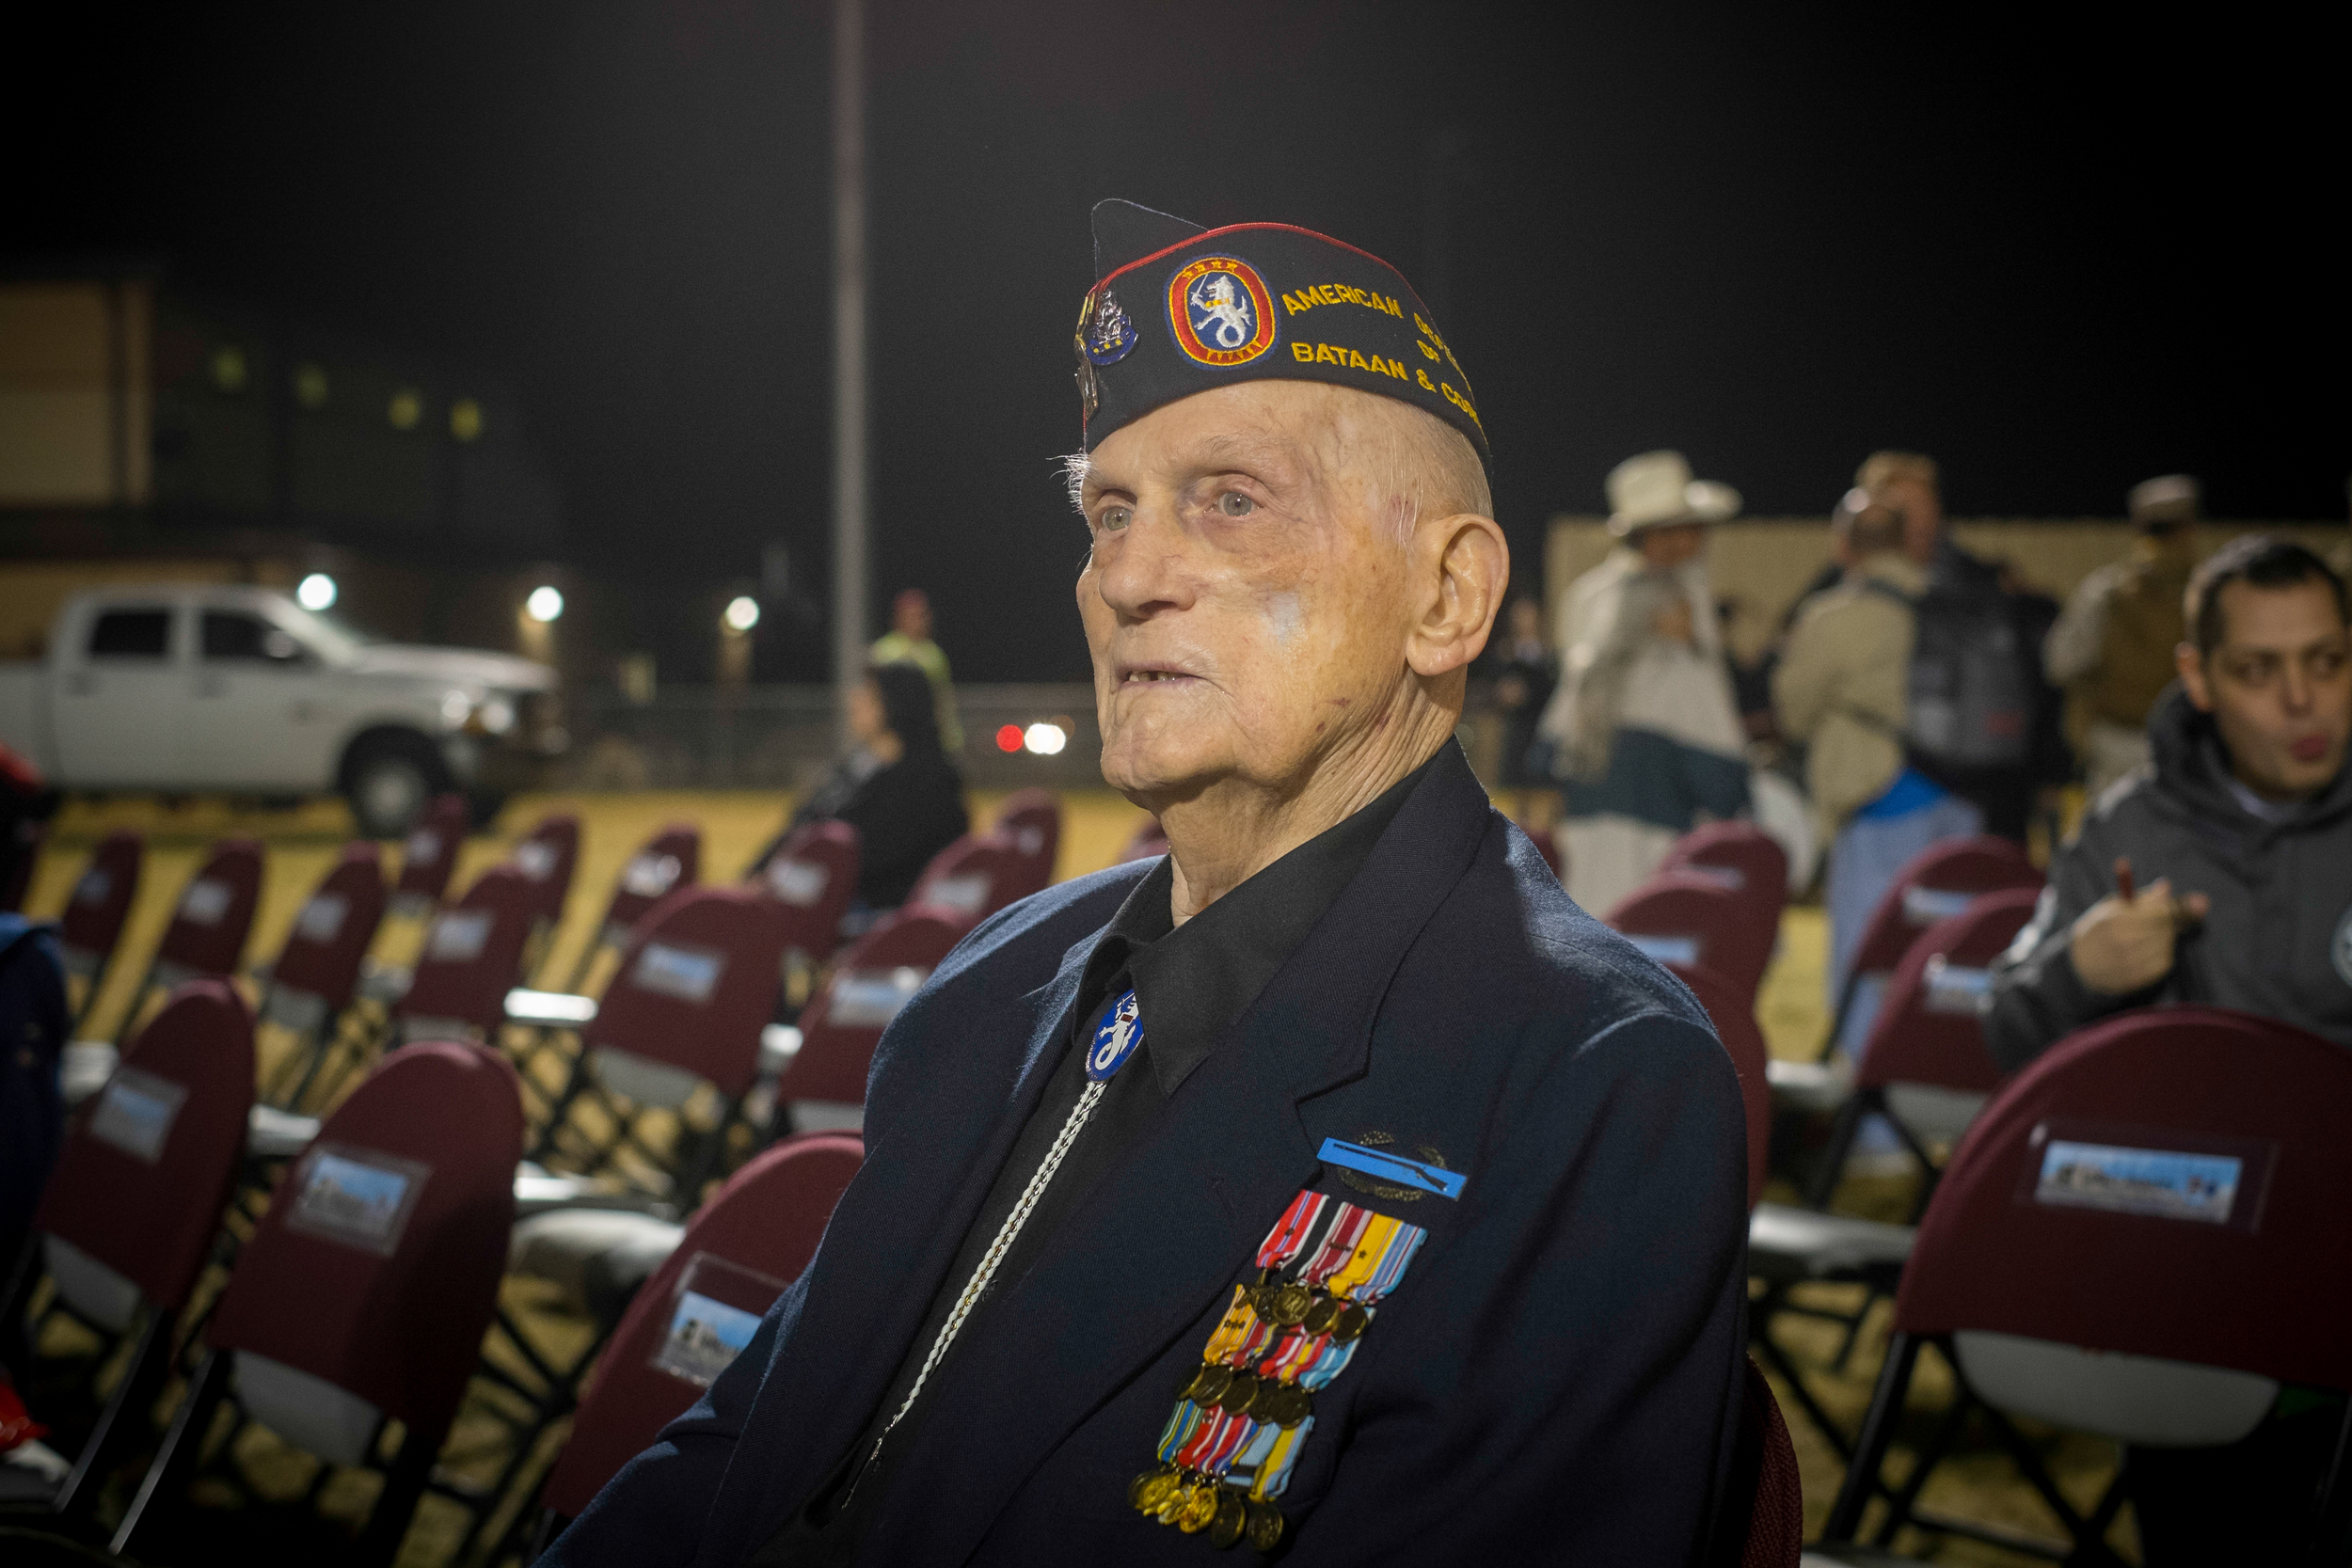 93-year-old Private First Class William L. Eldridge, survivor of the Bataan Death March in World War 2, waits for the opening ceremonies to start at the 26th Bataan Memorial Death March at White Sands Missile Range in New Mexico.